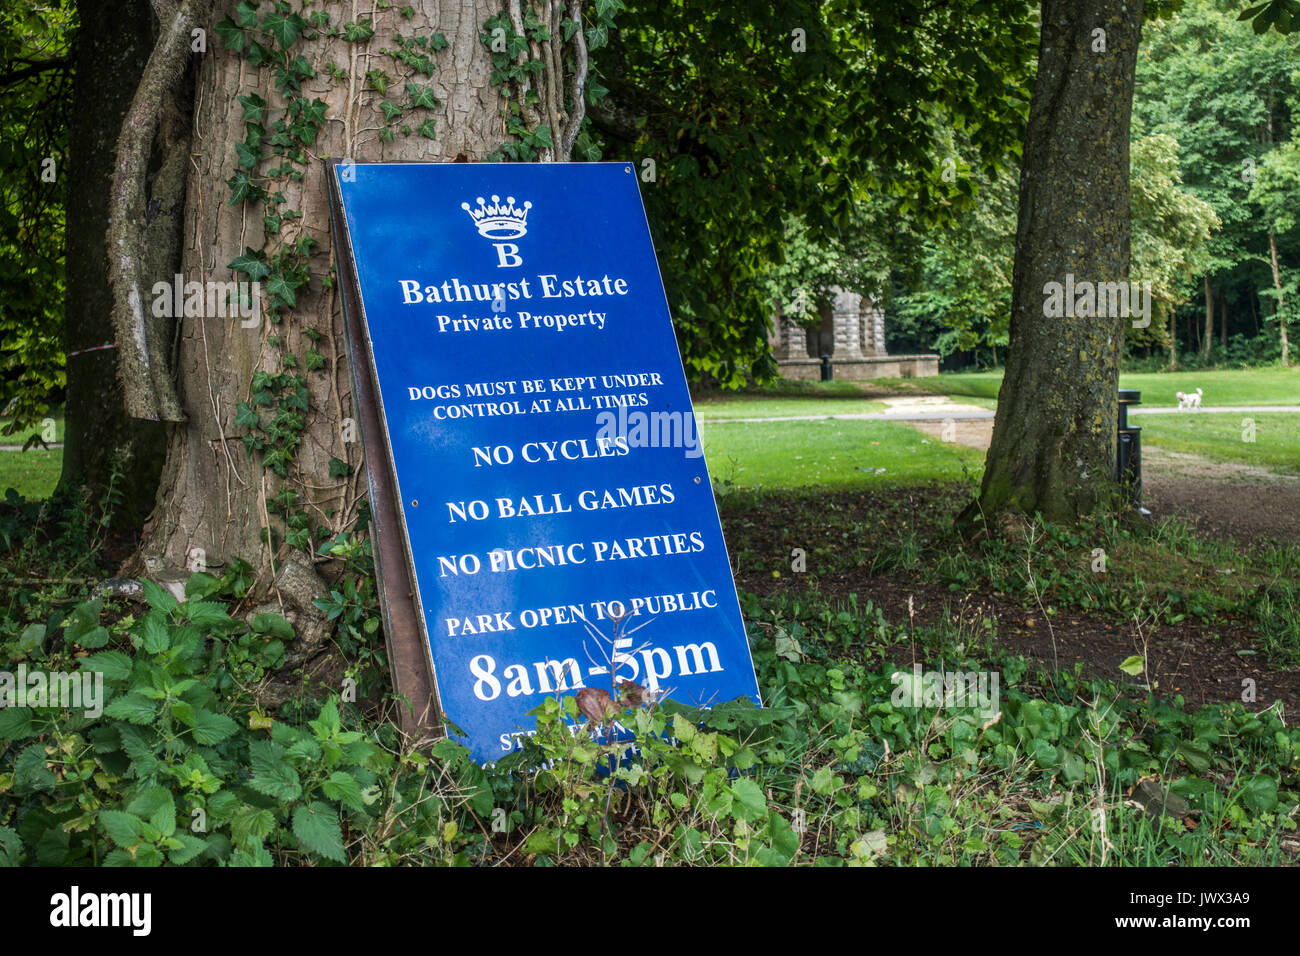 Bathurst Estate rules sign in the Cotswolds town of Cirencester, Gloucestershire, England, UK. - Stock Image